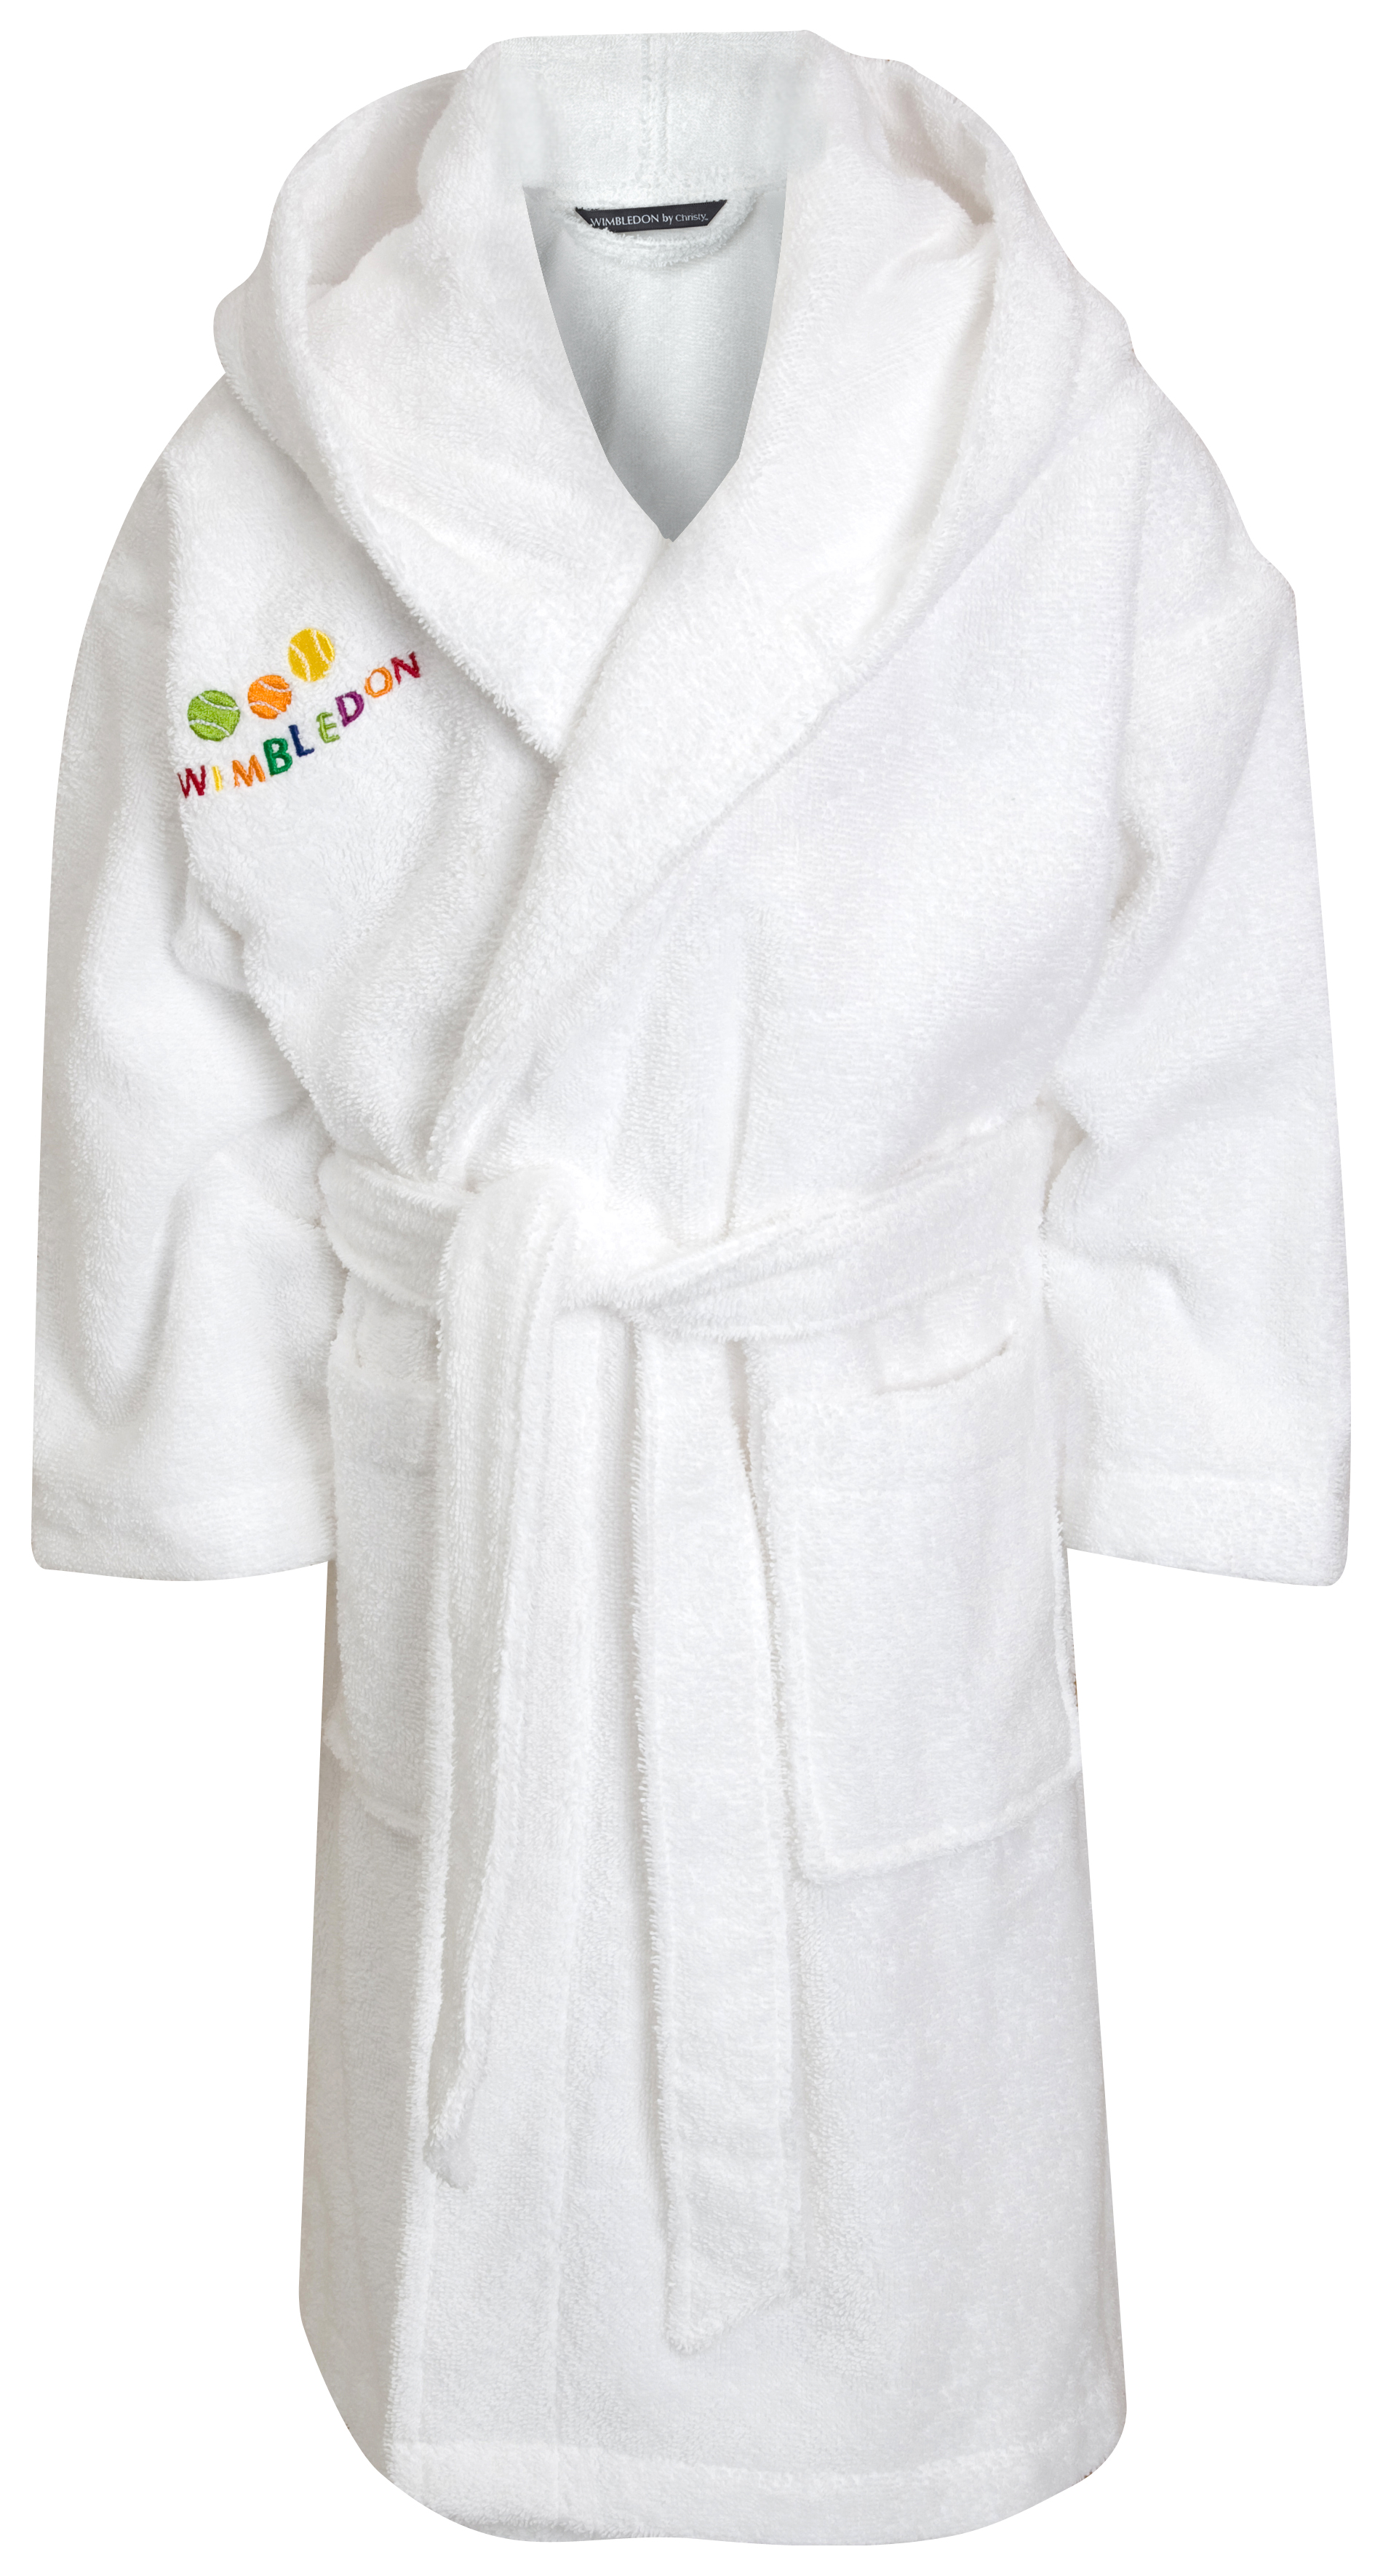 Wimbledon Childrens Terry Robe - White